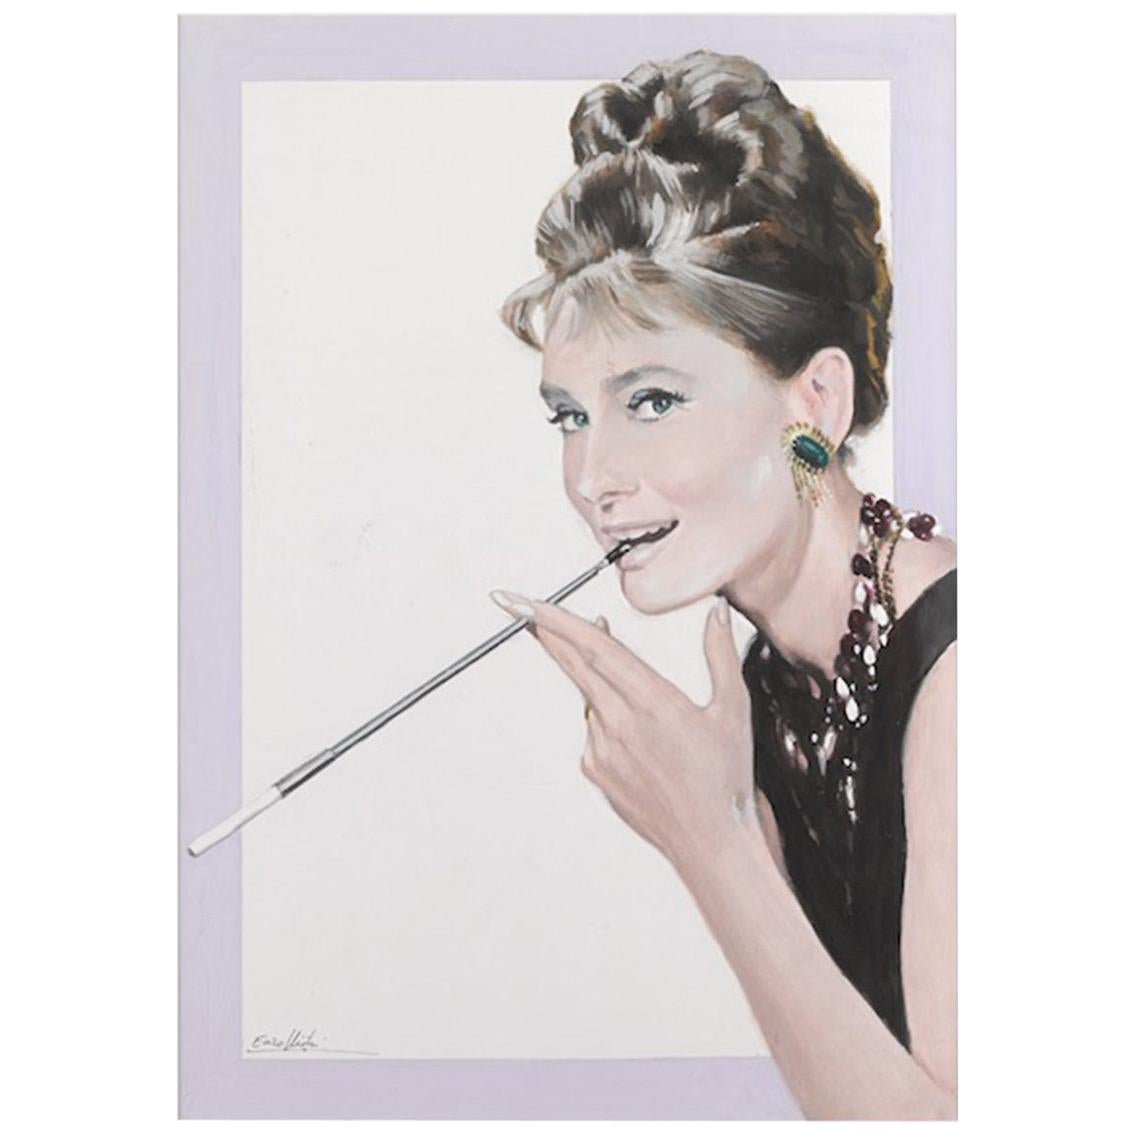 Breakfast at Tiffany's '1961' Poster